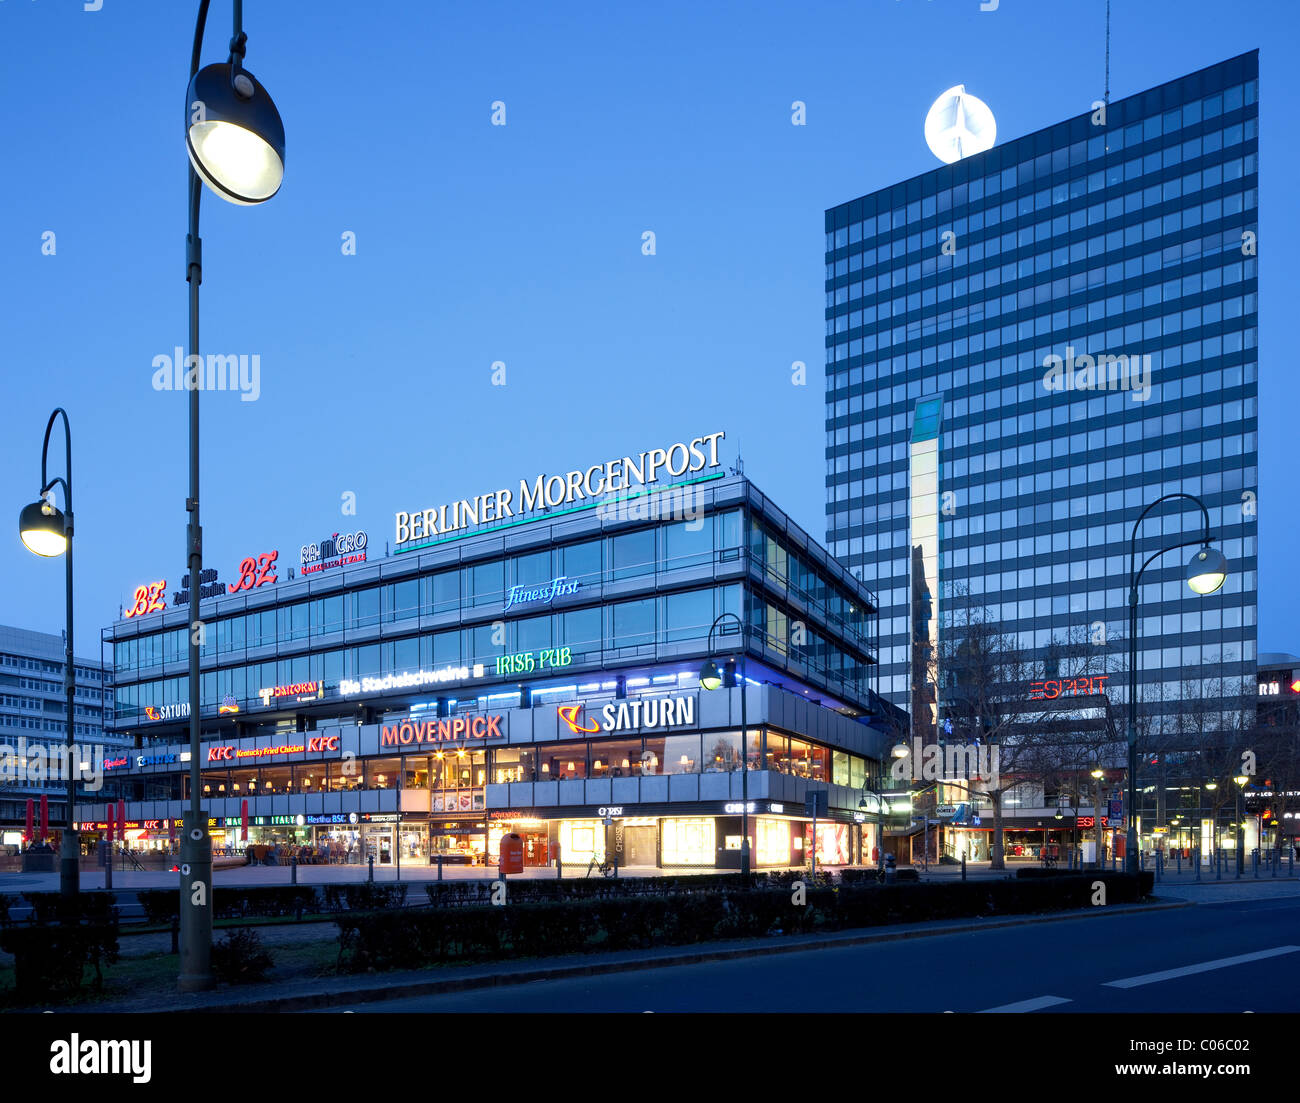 europa center shopping mall charlottenburg district berlin stock photo 34561858 alamy. Black Bedroom Furniture Sets. Home Design Ideas